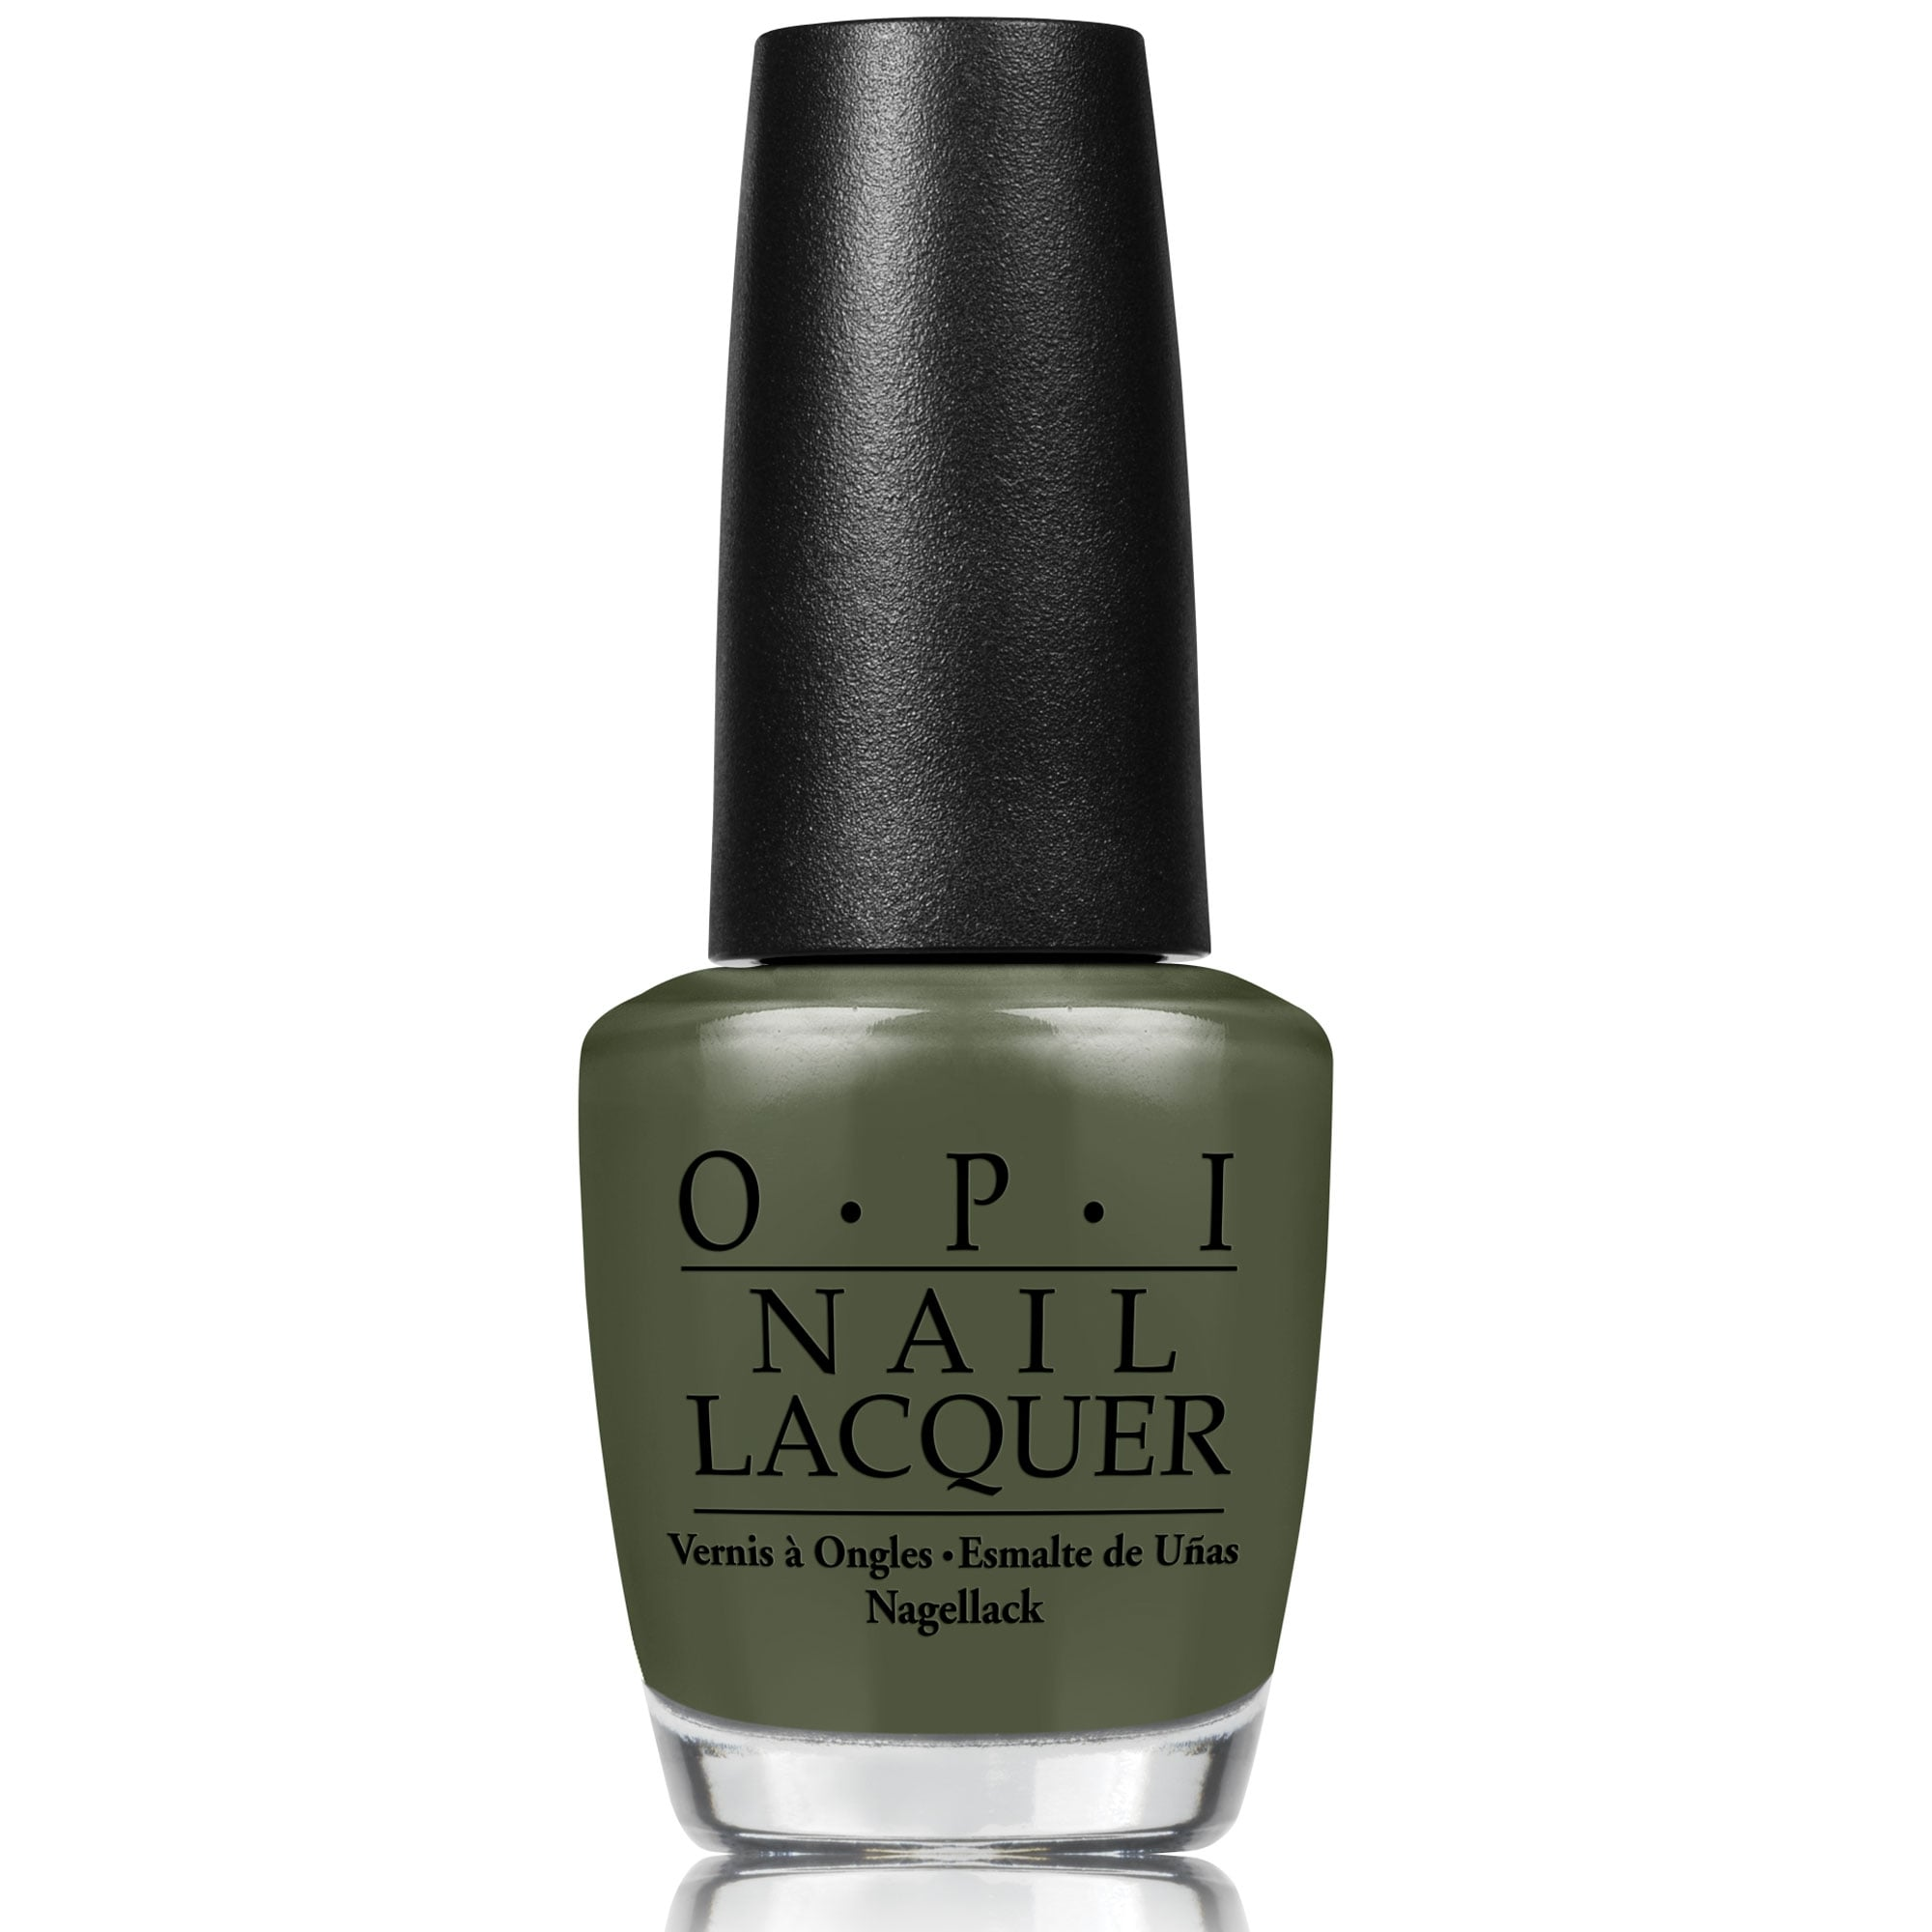 Green Nail Polish in OPI, Jessica, China Glaze, Essie & CND Vinylux